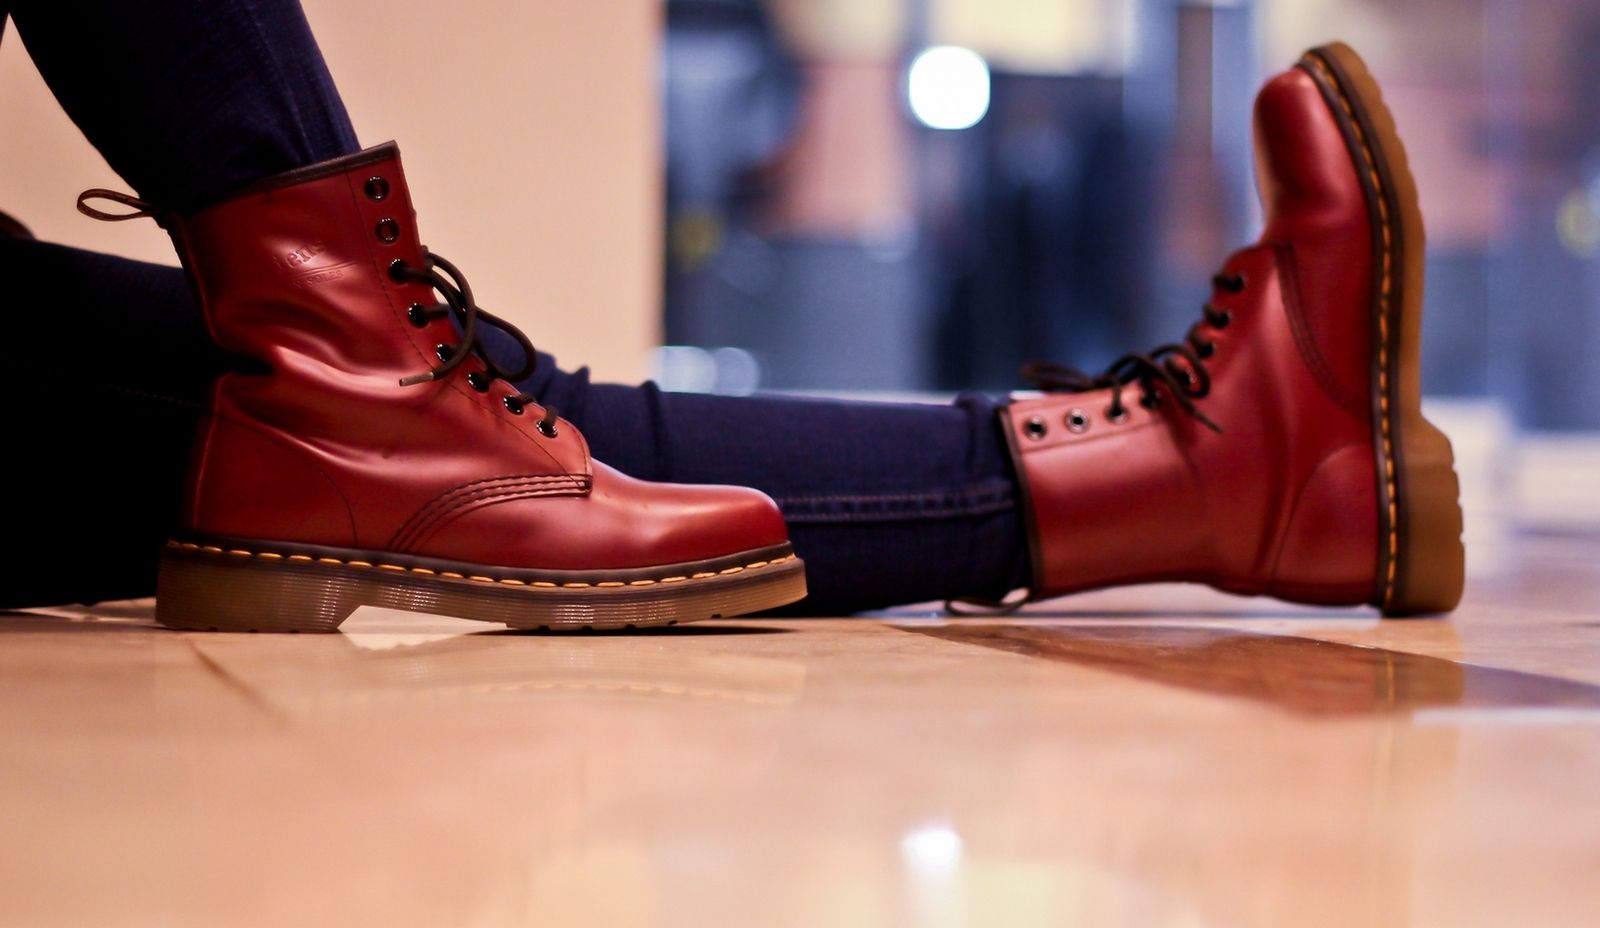 Dr. Martens 1460 Cherry Reds. Thanks to Ellen from the Philippines for  sharing this